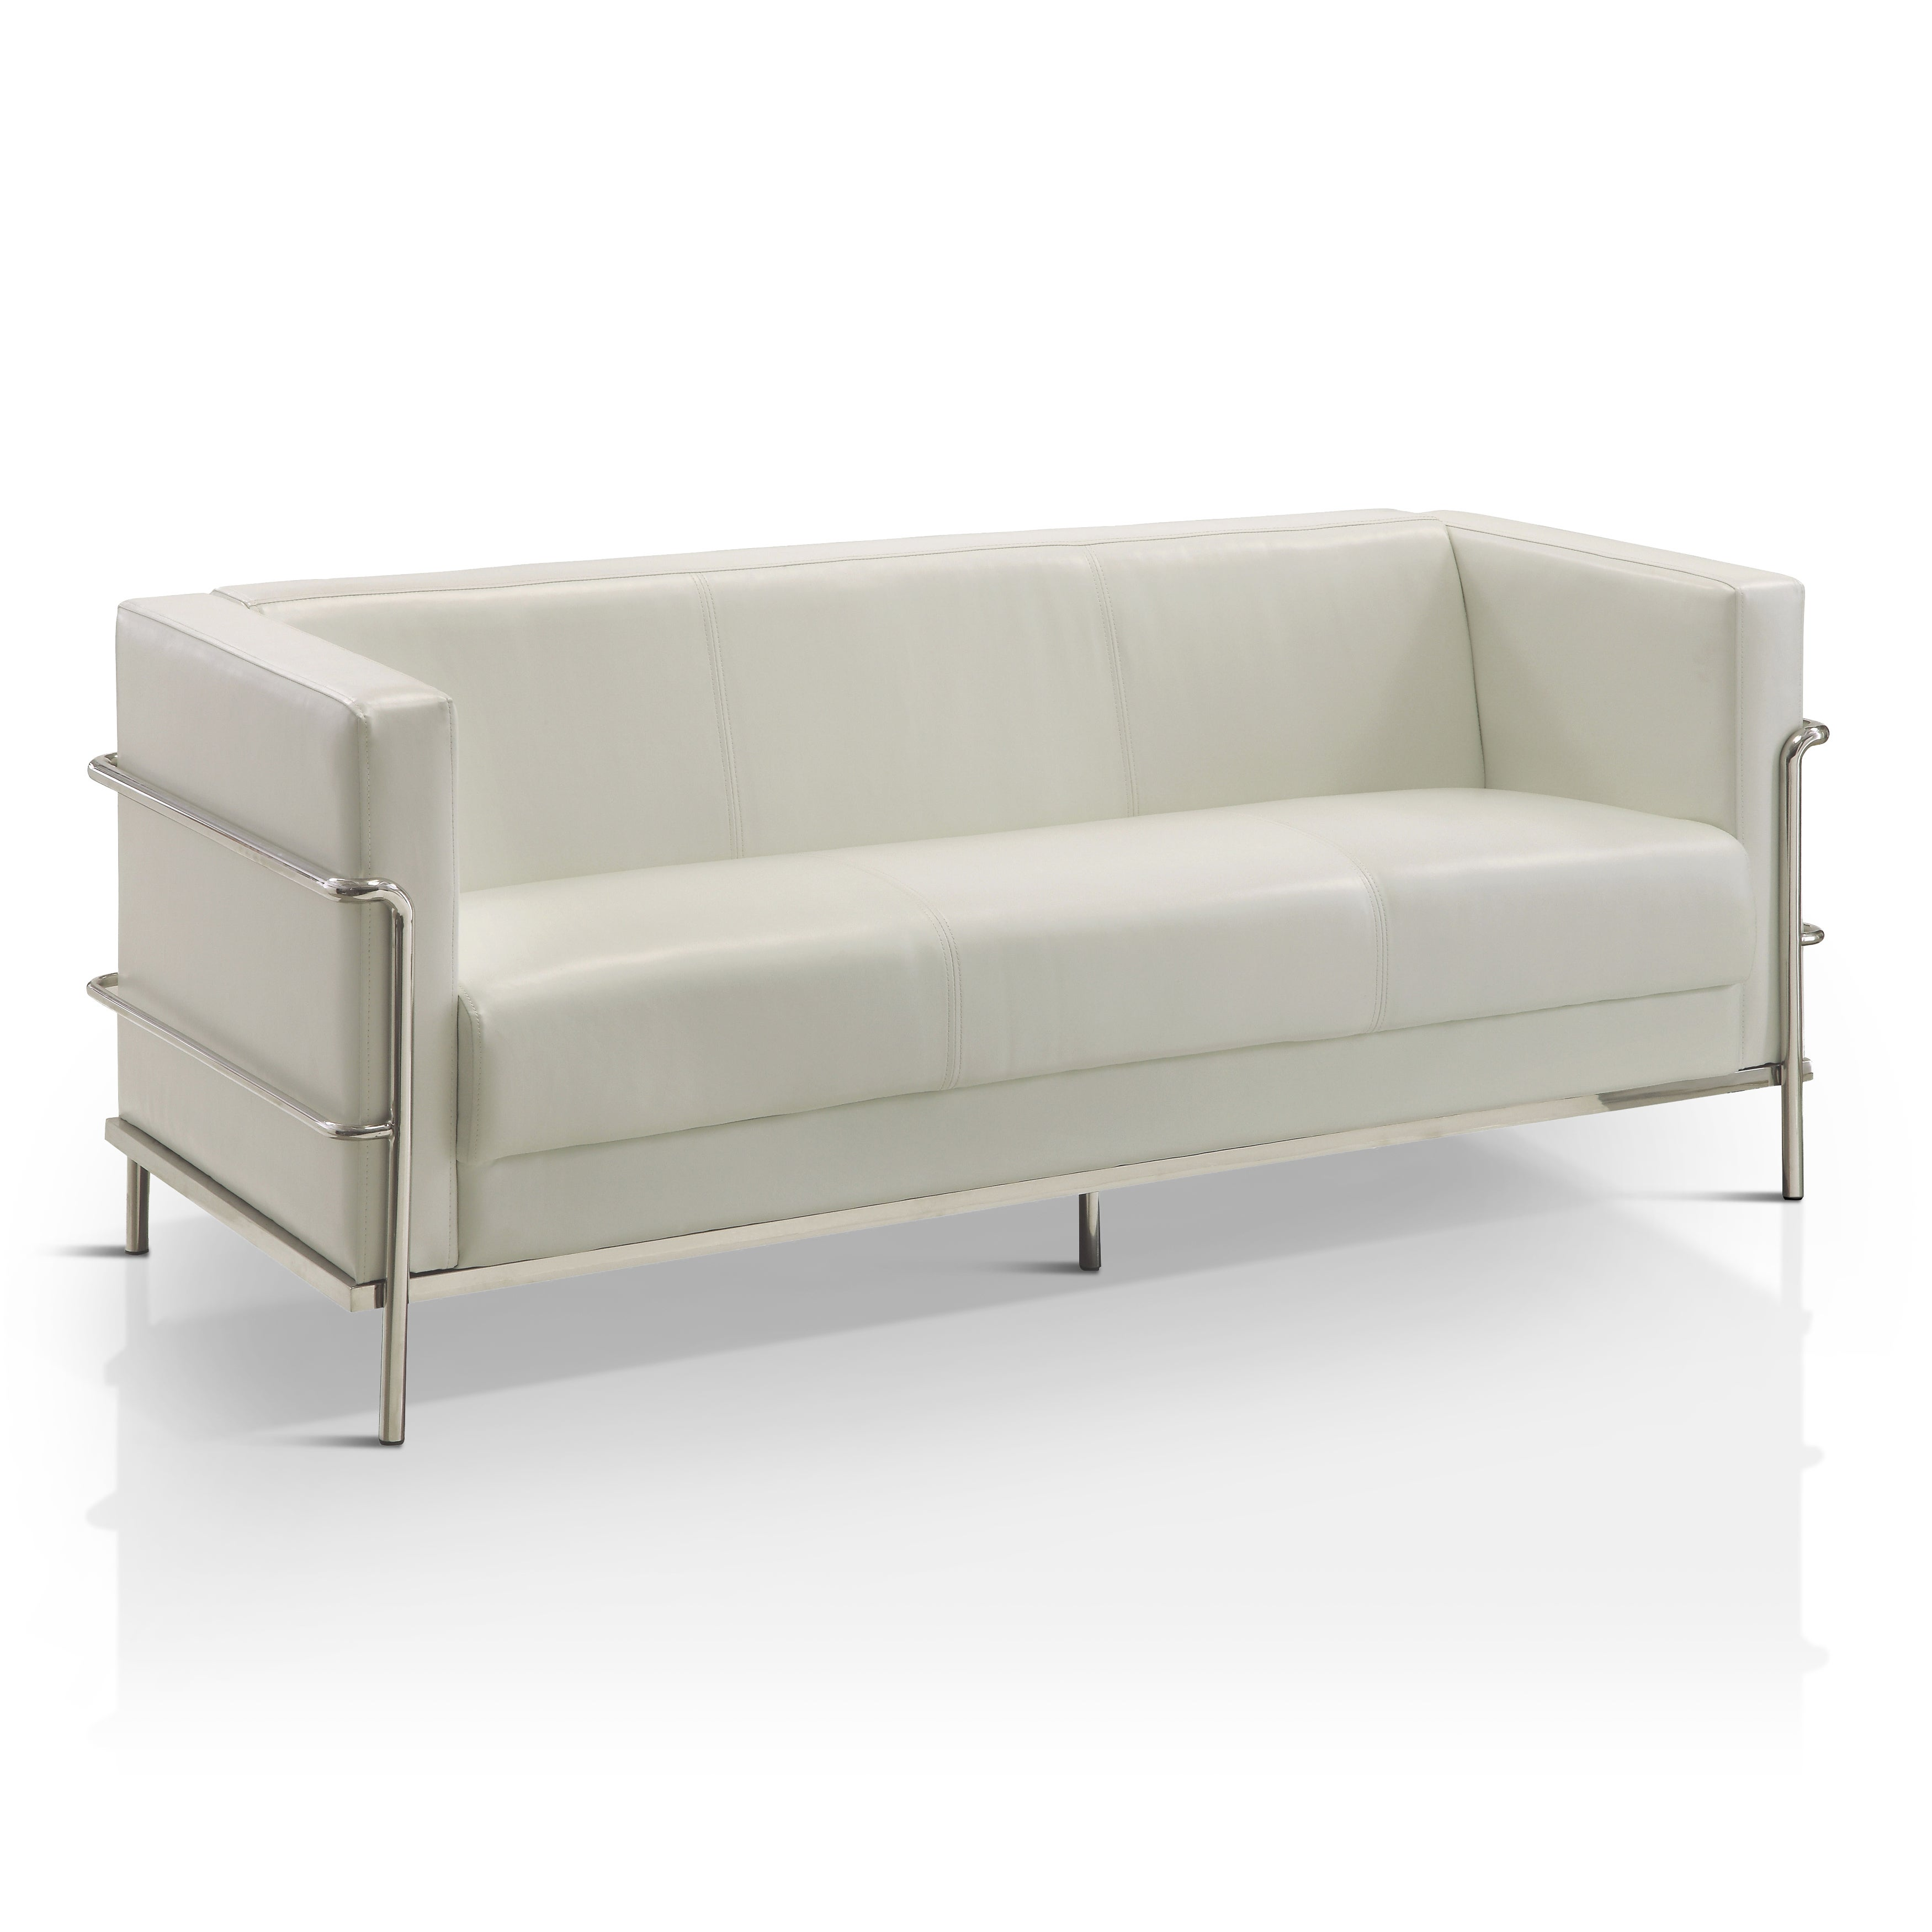 Shop Furniture Of America Sonica Contemporary Tuxedo Style Leatherette Sofa    Free Shipping Today   Overstock.com   13000757